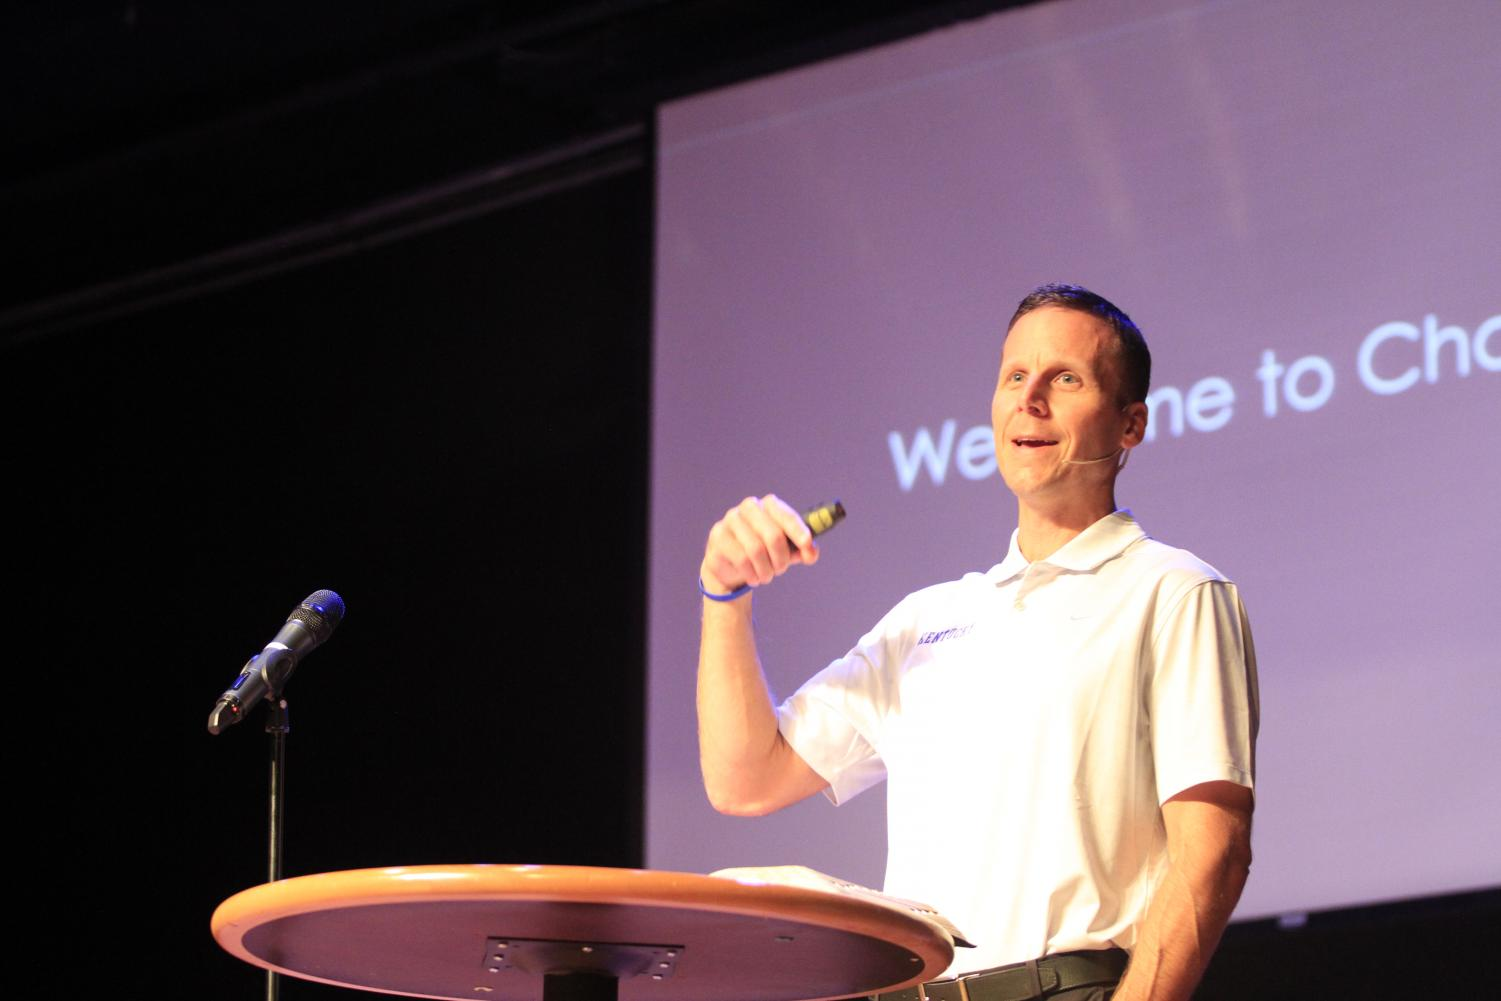 Jason Cummins, Executive Associate Athletics Director at UK speaks to students in Chapel.